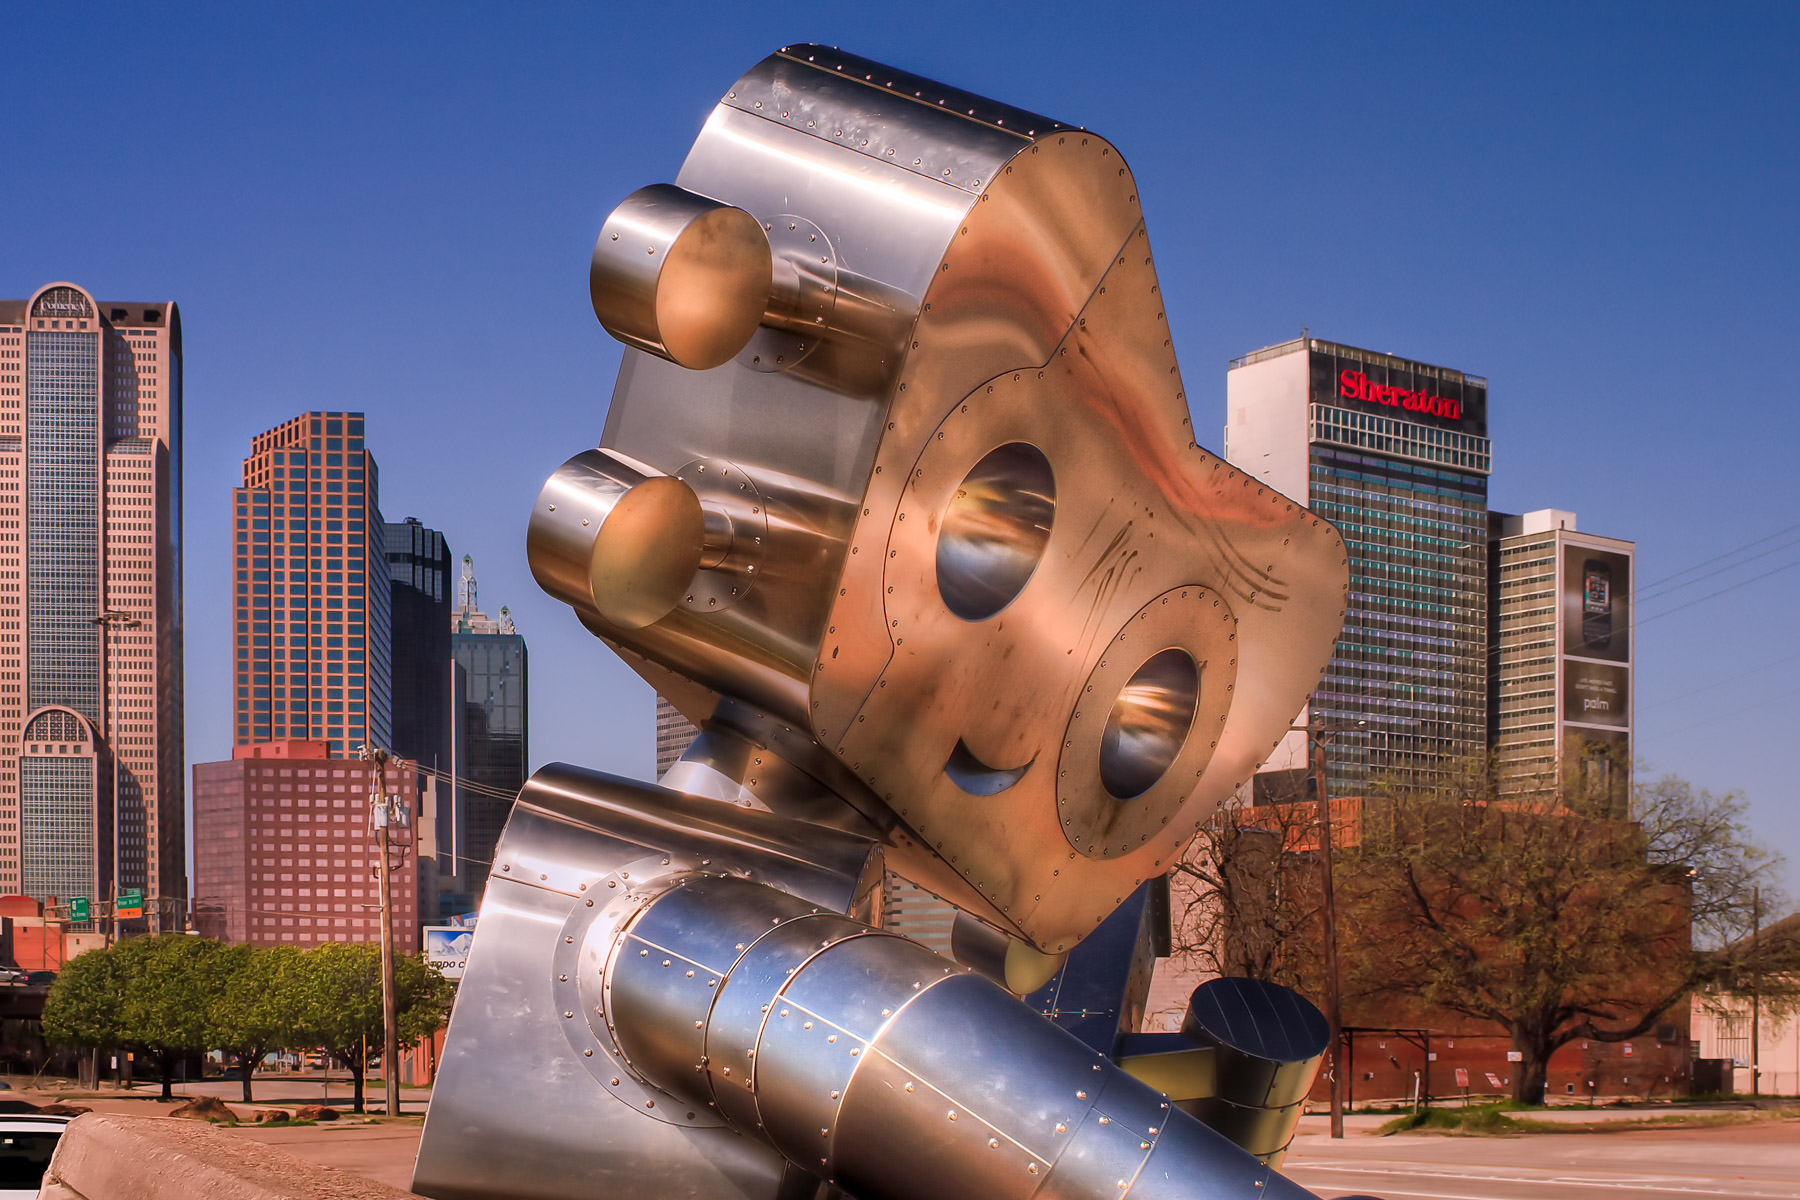 Dallas' Traveling Man sculpture in Deep Ellum.